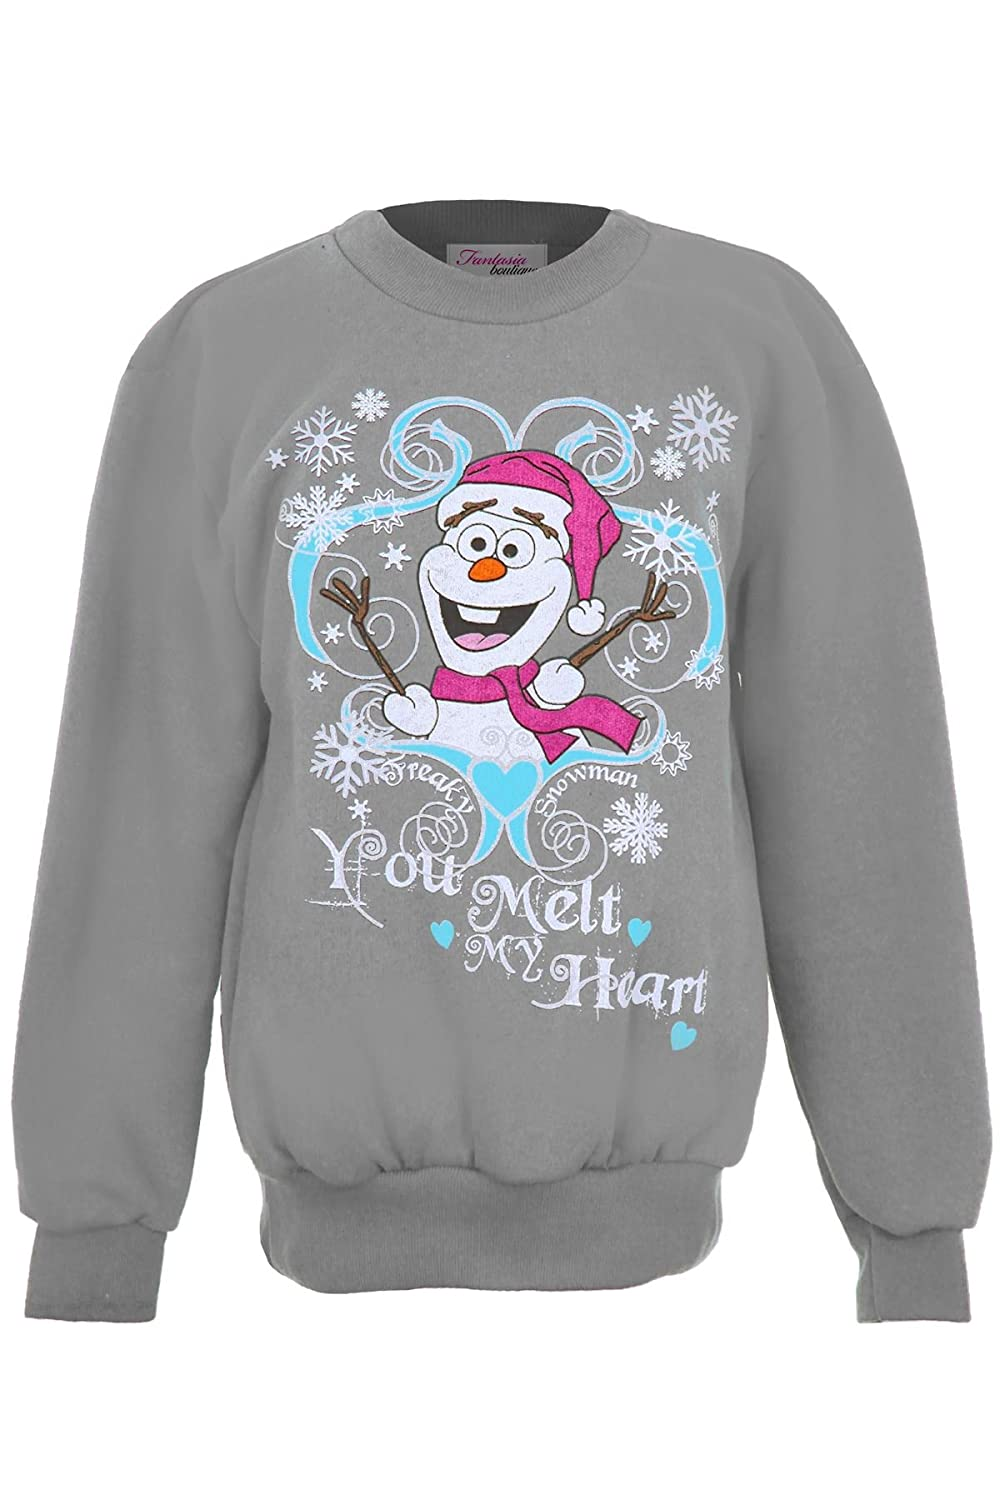 FANTASIA BOUTIQUE ® Girls XMAS Festive Christmas Snowman Olaf Frozen Children's Fleece Lined Jumper /